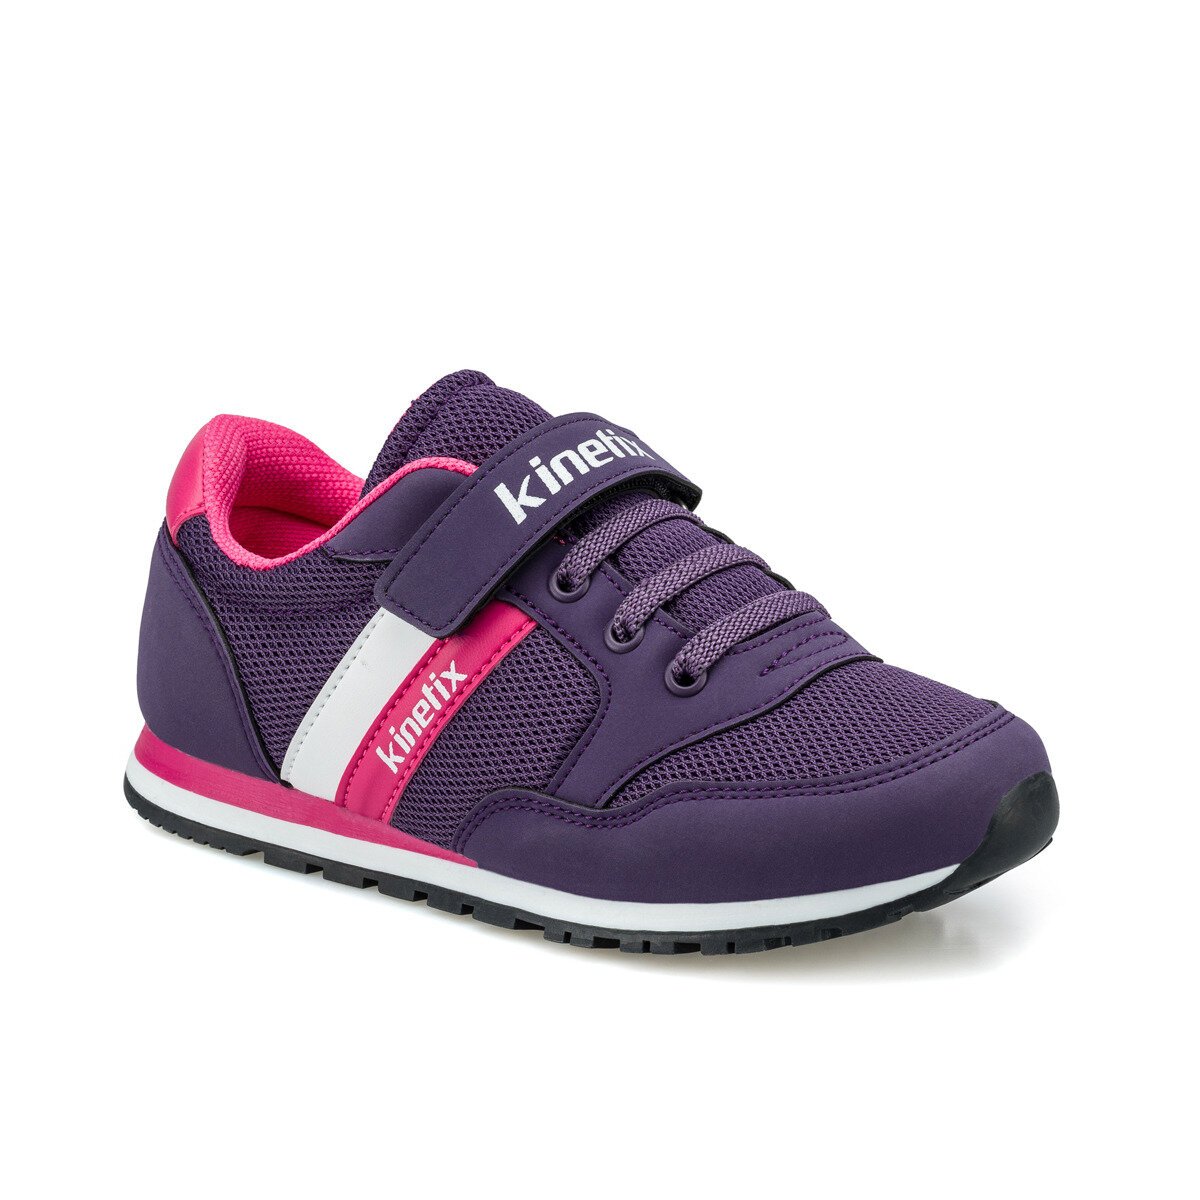 FLO PAYOF Purple Female Child Running Shoes KINETIX